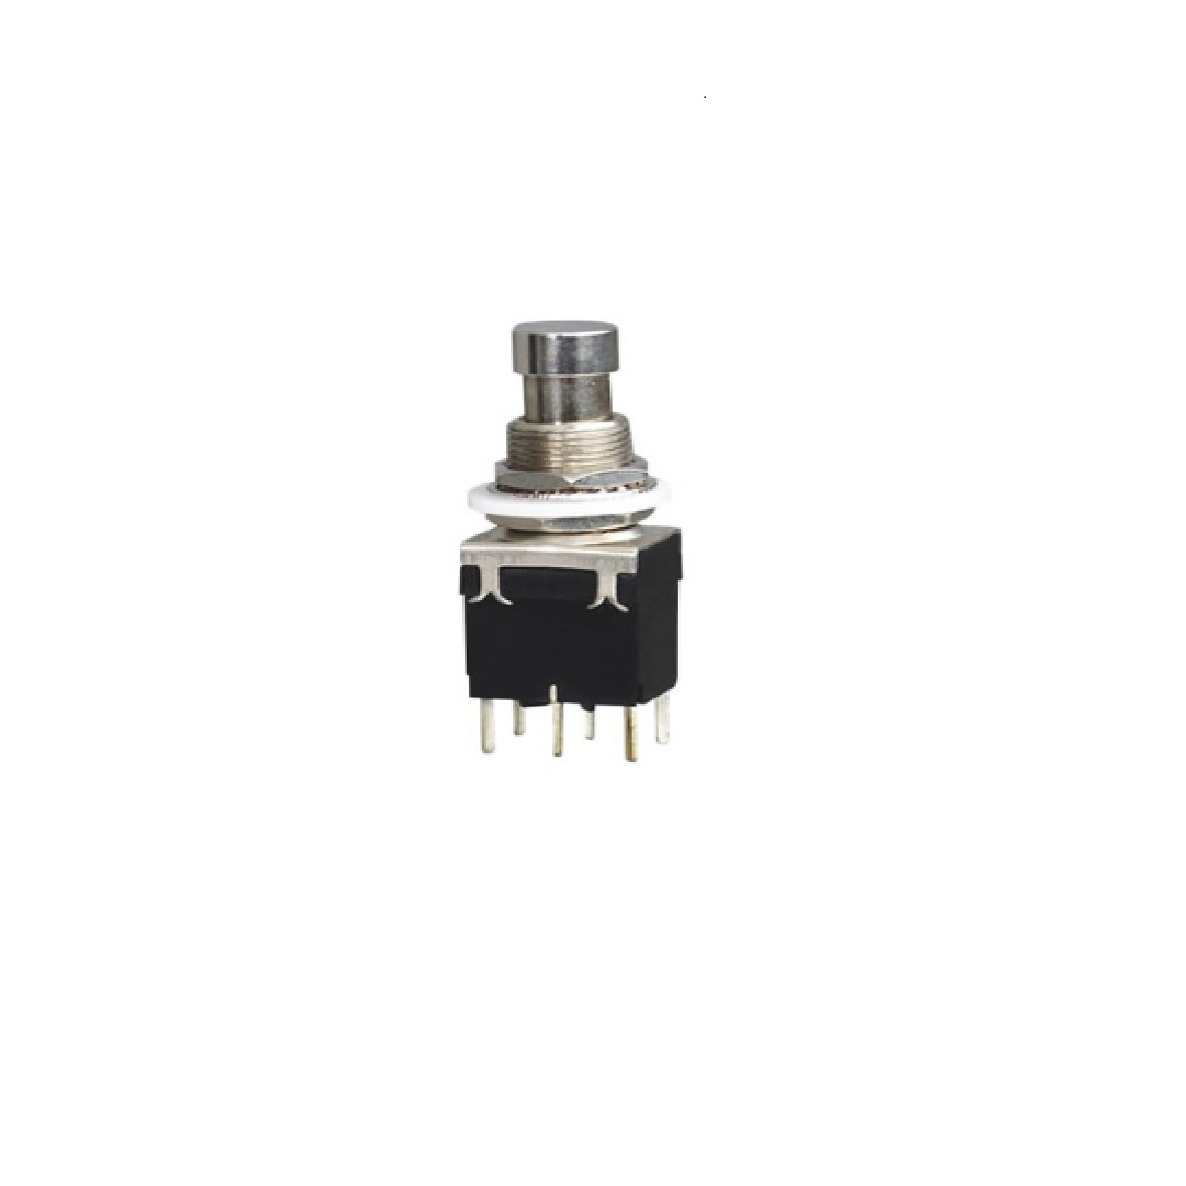 medium resolution of 3pcs dpdt momentary on on pushbutton switches 6pin 12mm guitar effect push button